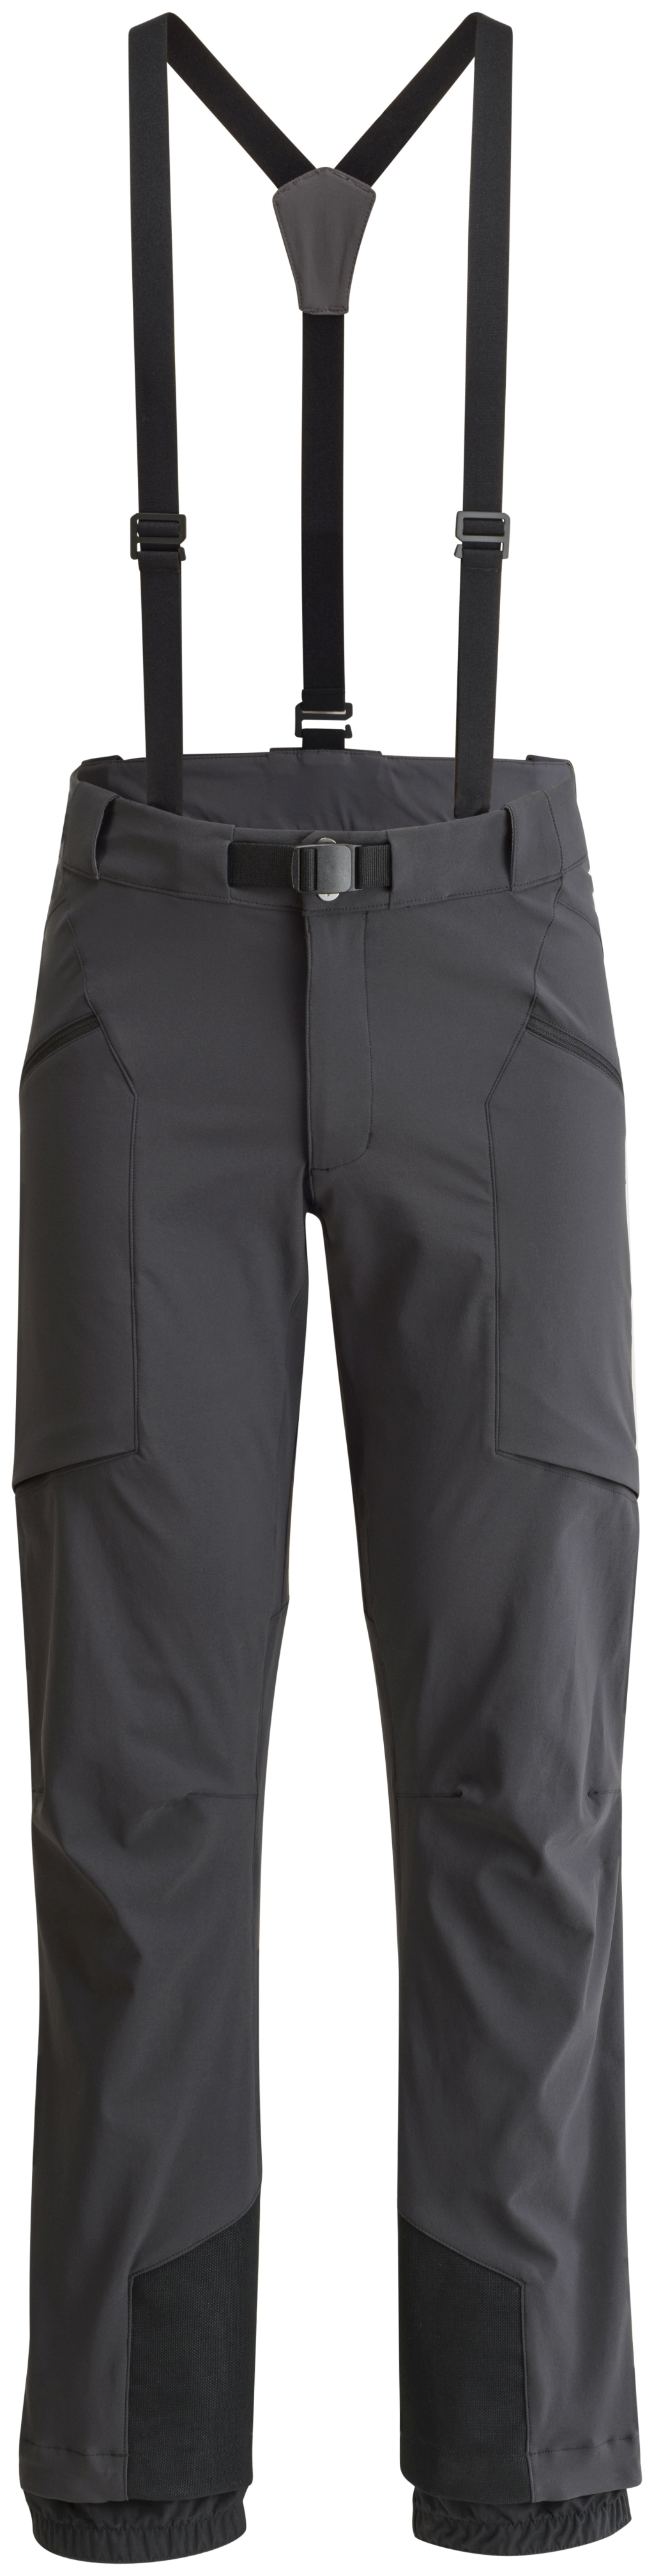 Black Diamond Dawn Patrol Ski Touring Pants Smoke-30